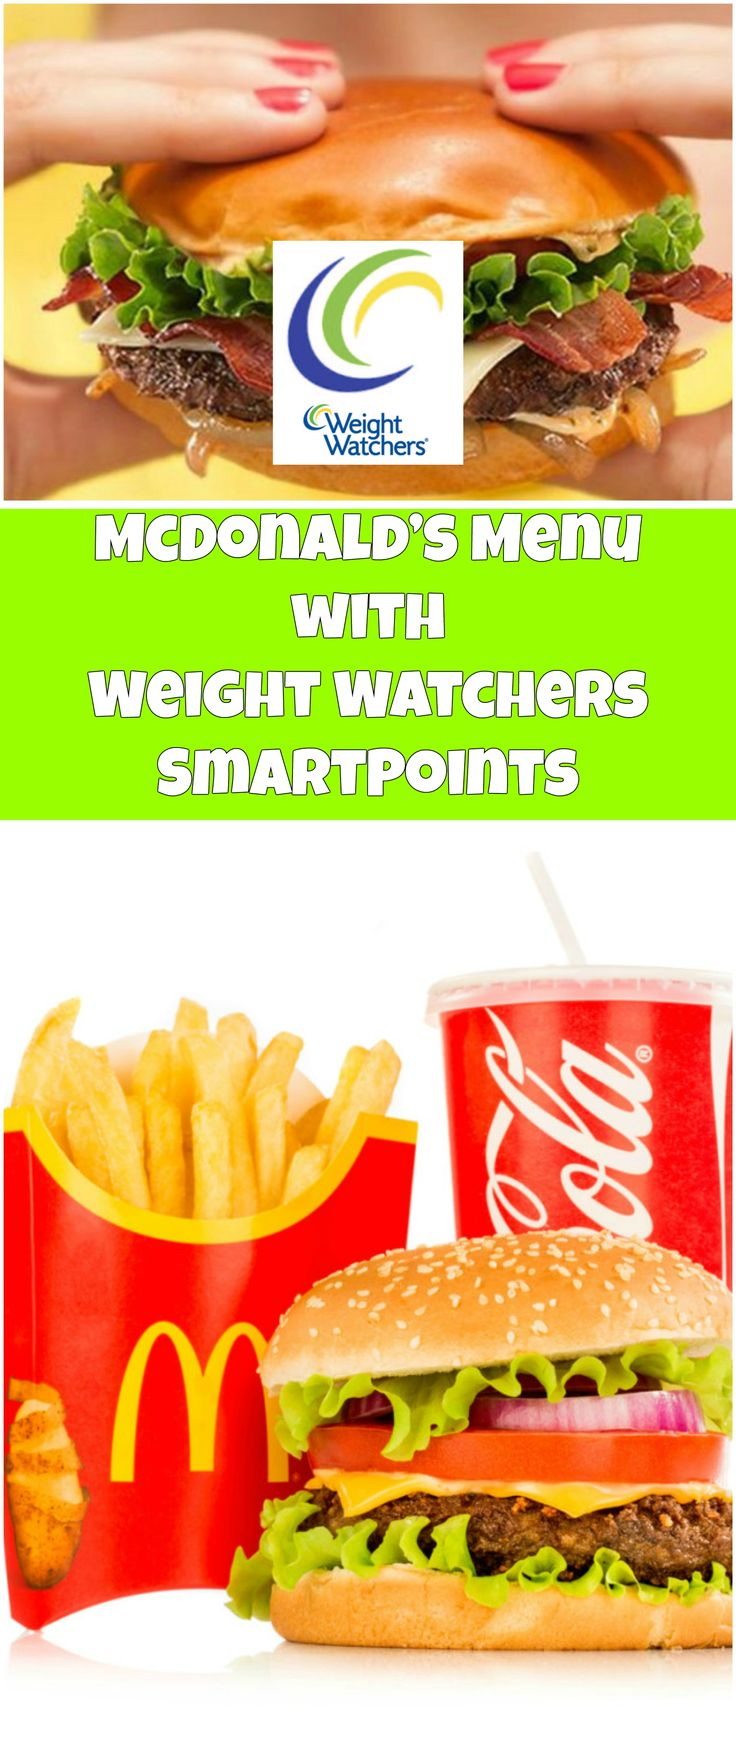 McDonald's+Menu+with+Weight+Watchers+SmartPoints